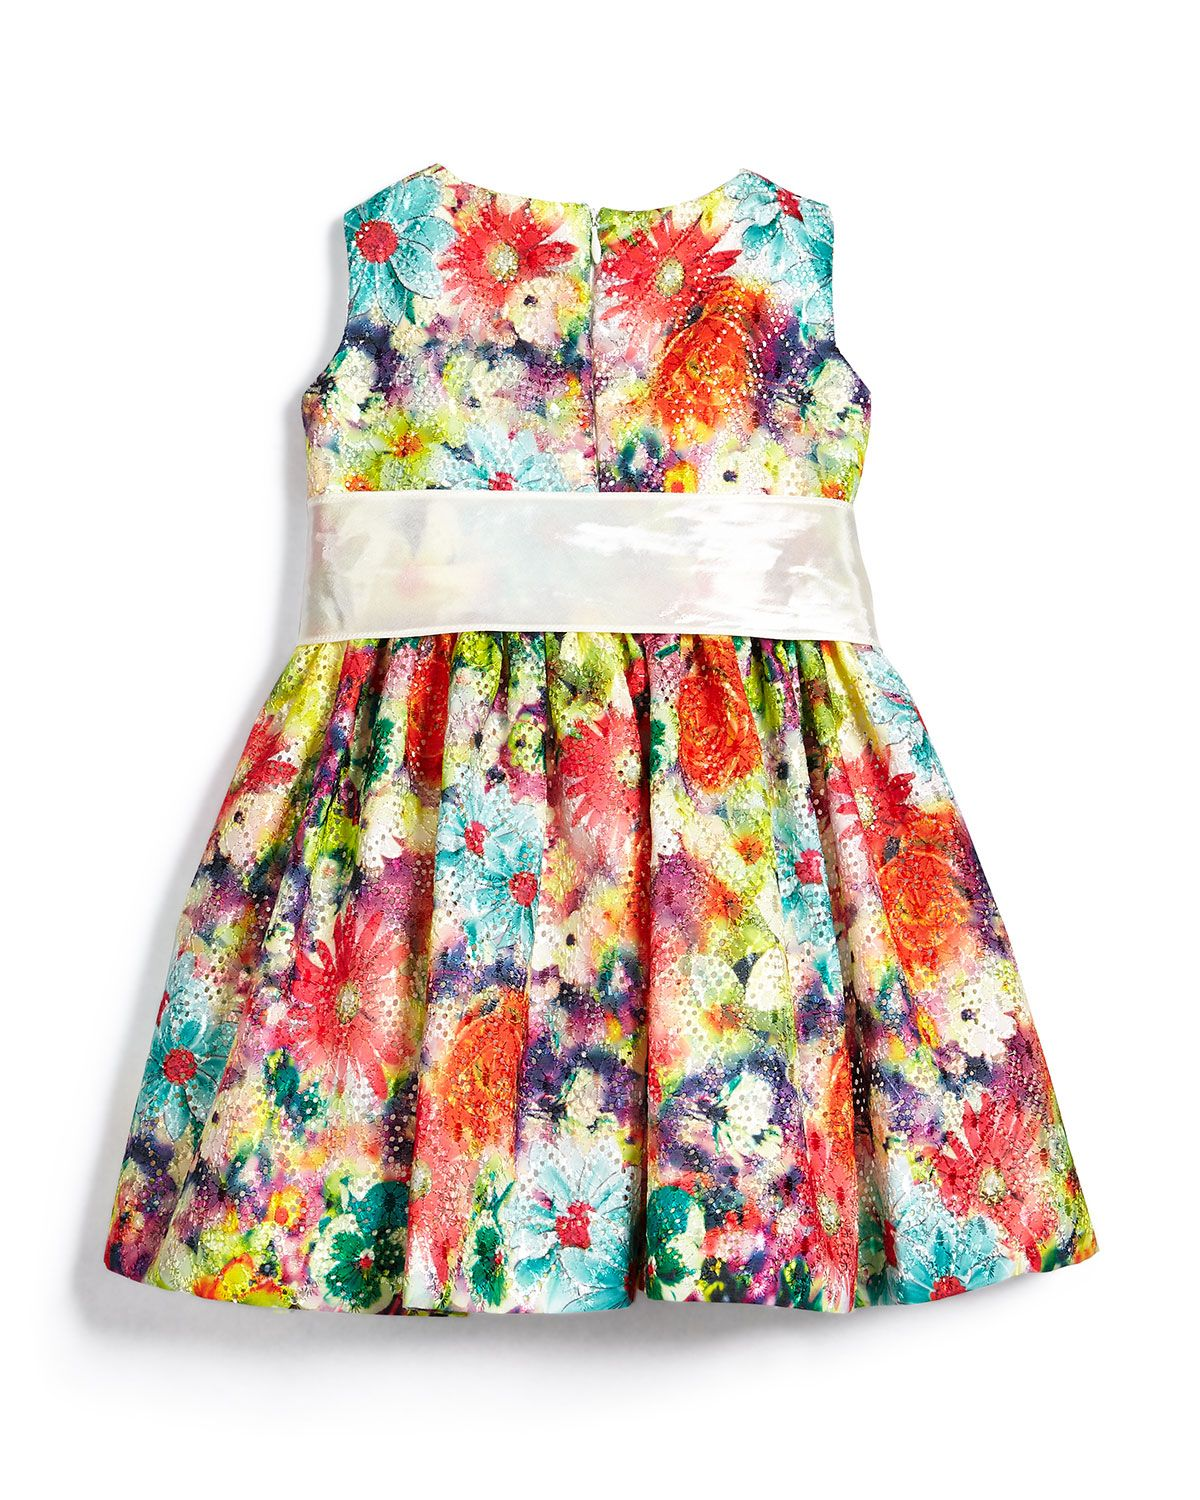 Garden Party Mesh A-Line Dress, Multicolor, Size 6M-3T